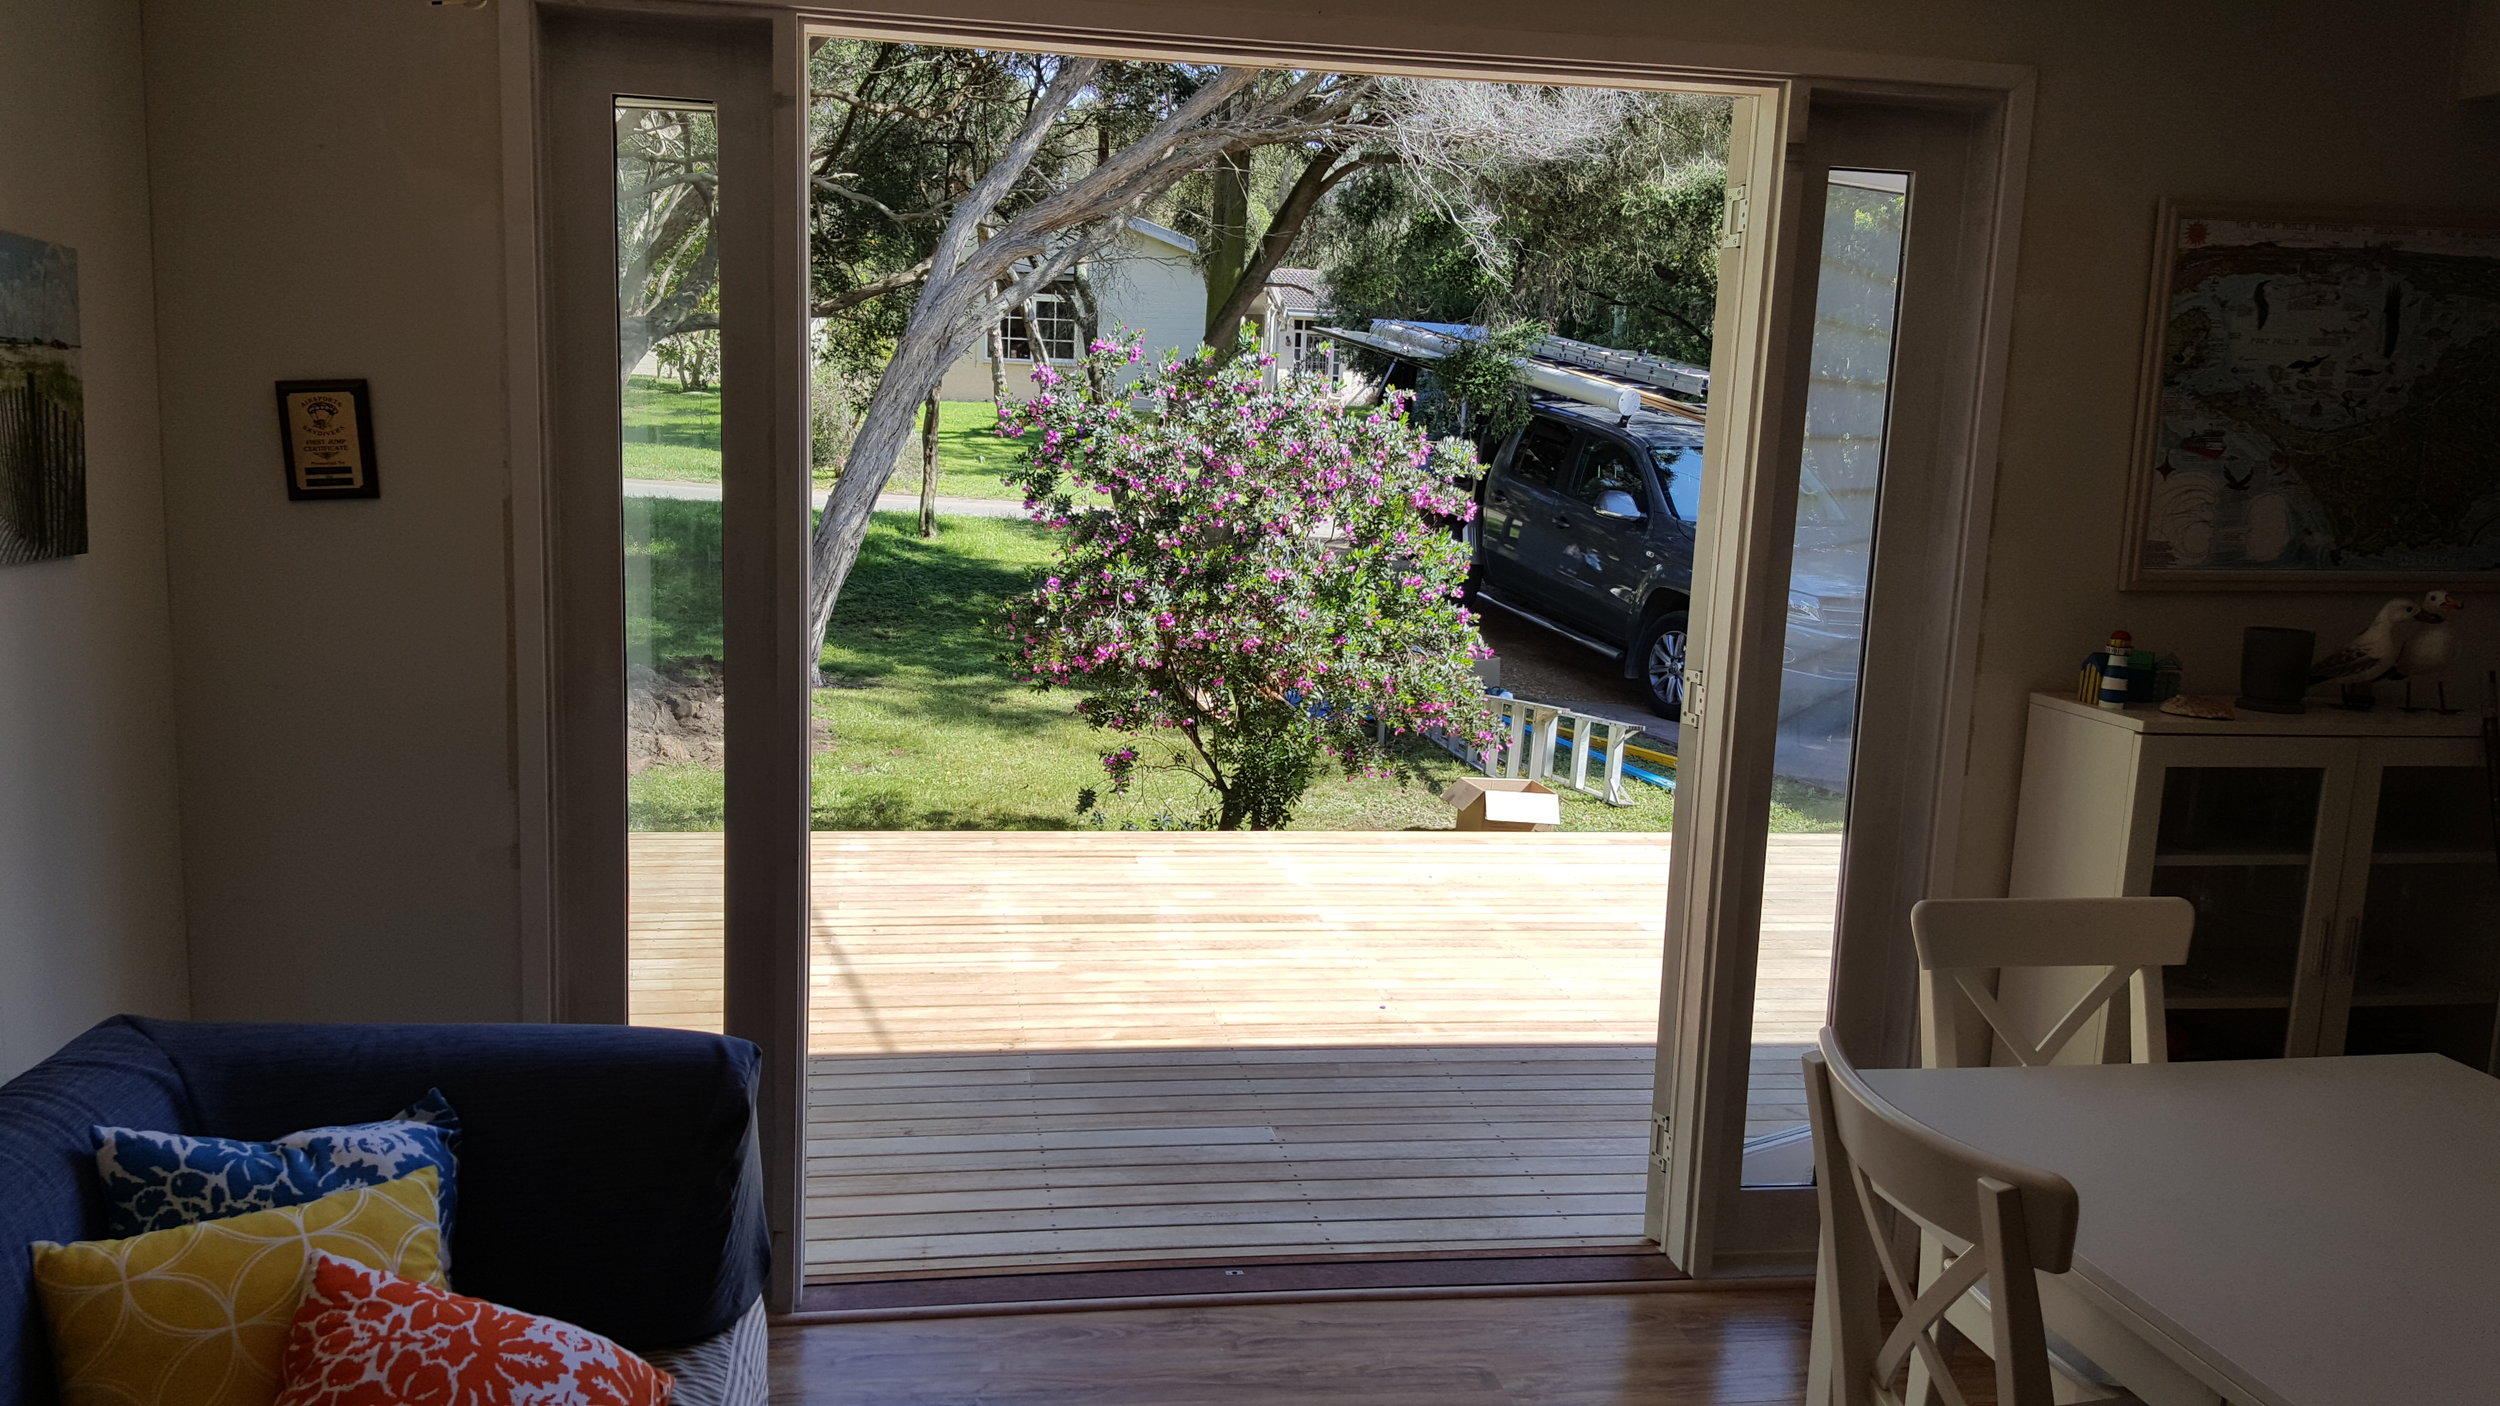 French Doors to the deck